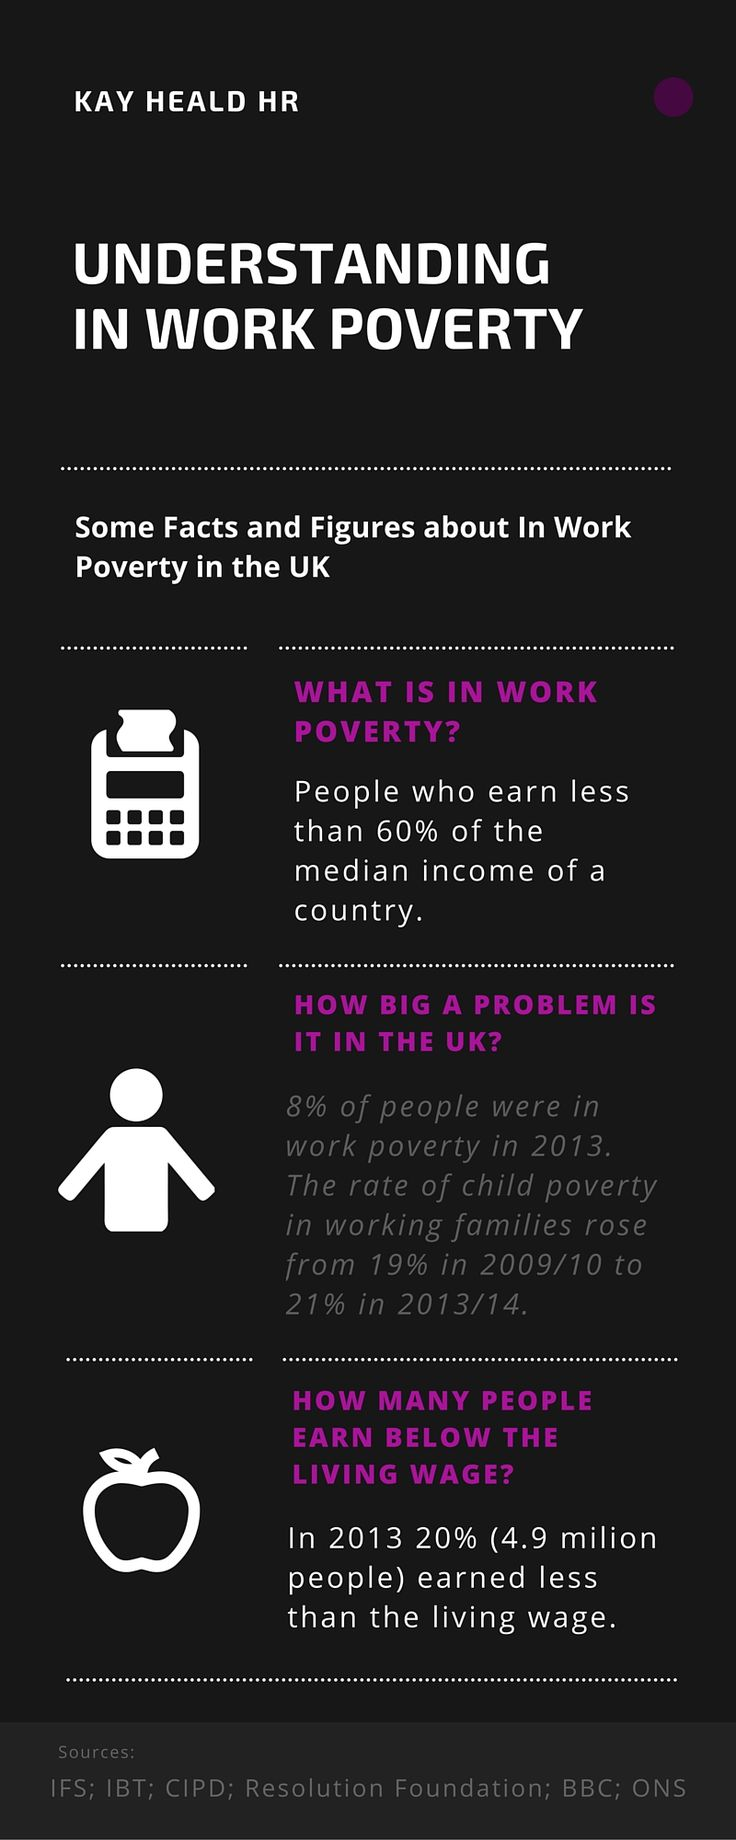 In Work Poverty is a growing problem